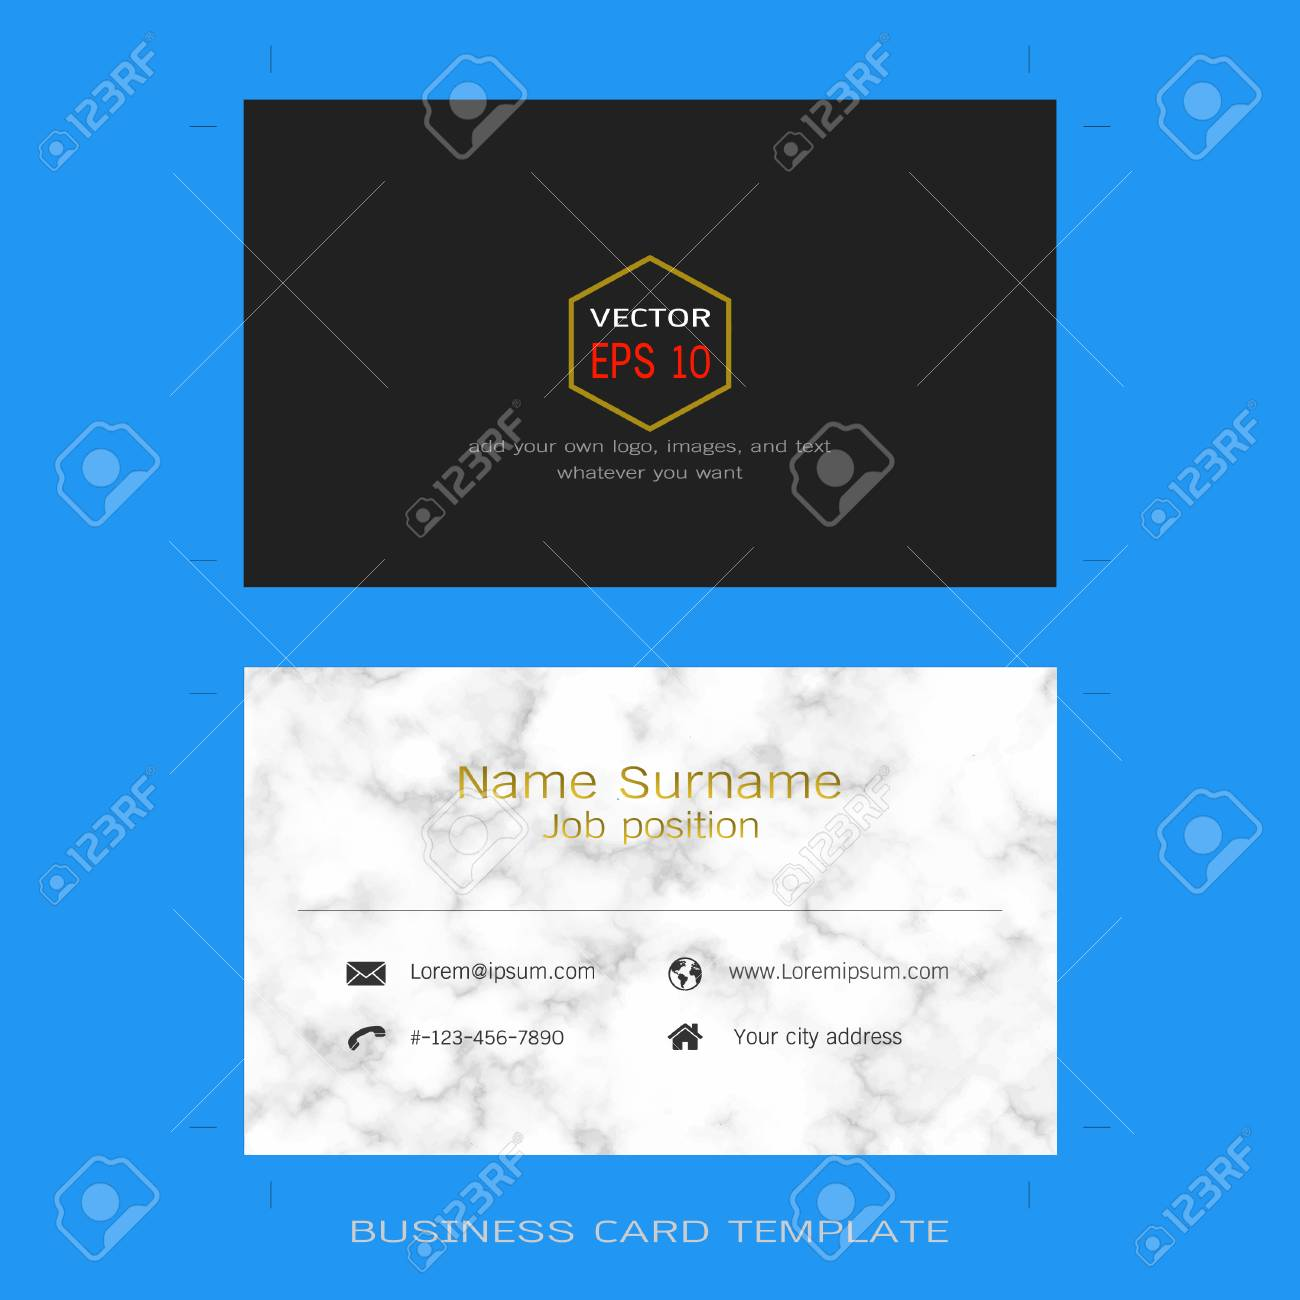 Modern designer business card layout templates marble texture modern designer business card layout templates marble texture background easy to use by print fbccfo Images